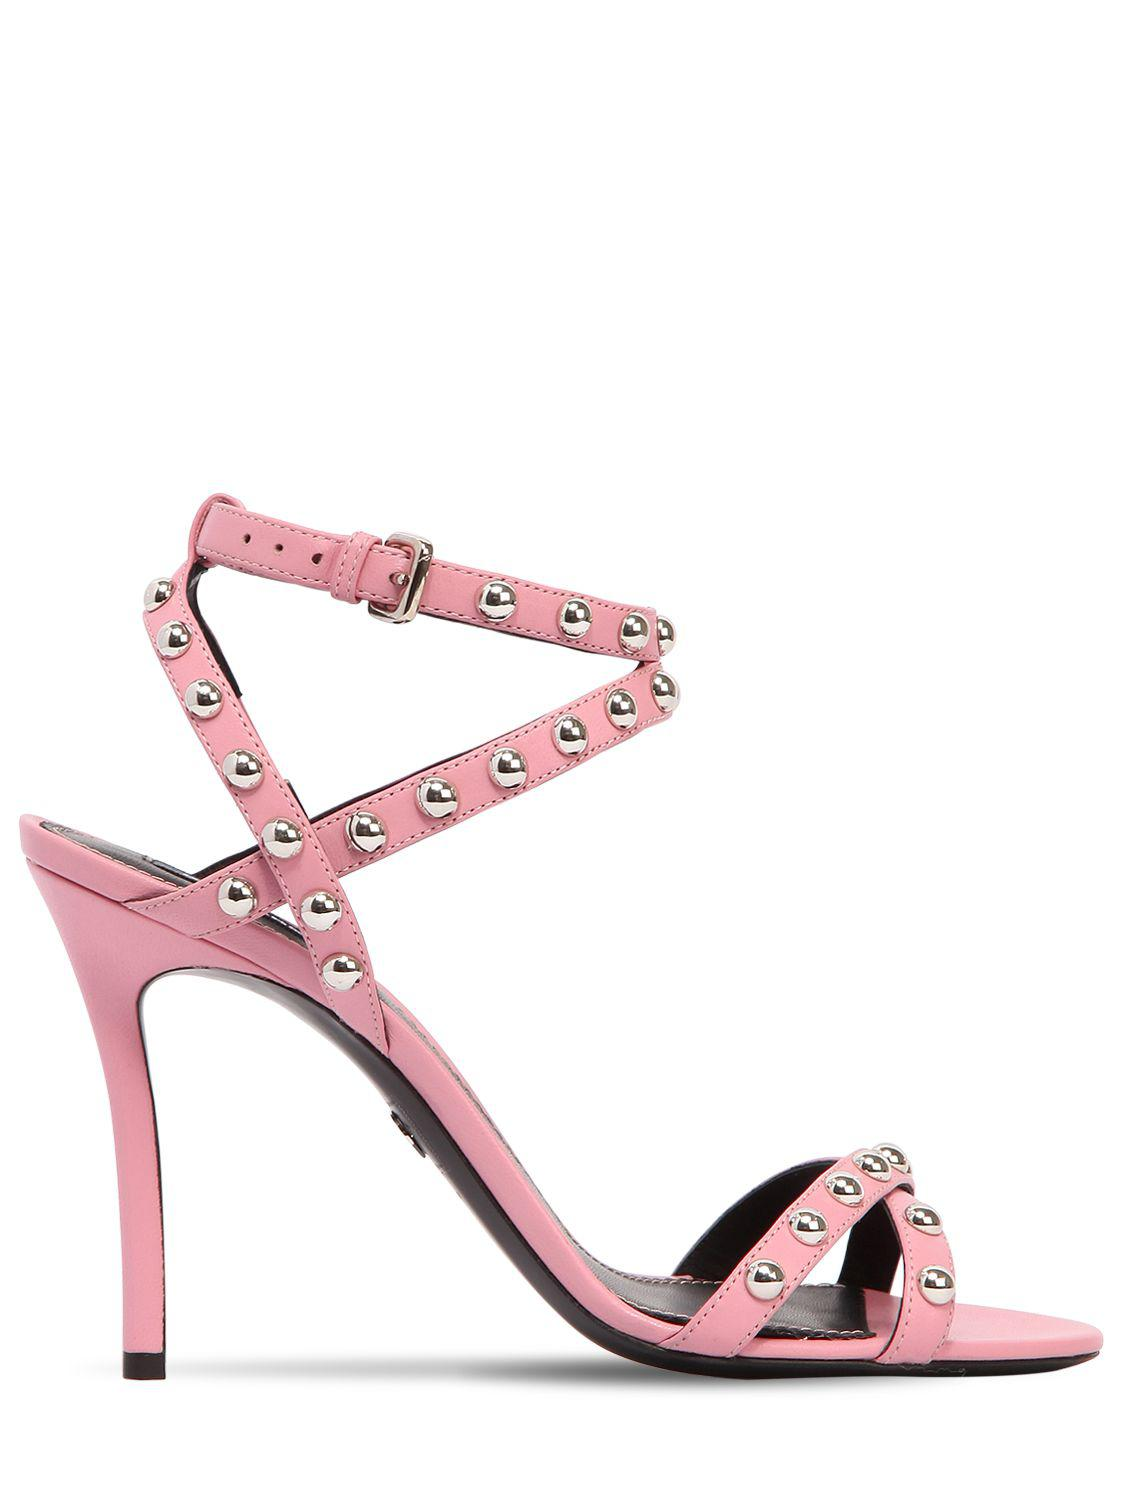 064b893ef06 Lyst - DSquared² 120mm 50 s Rock Studded Leather Sandals in Pink